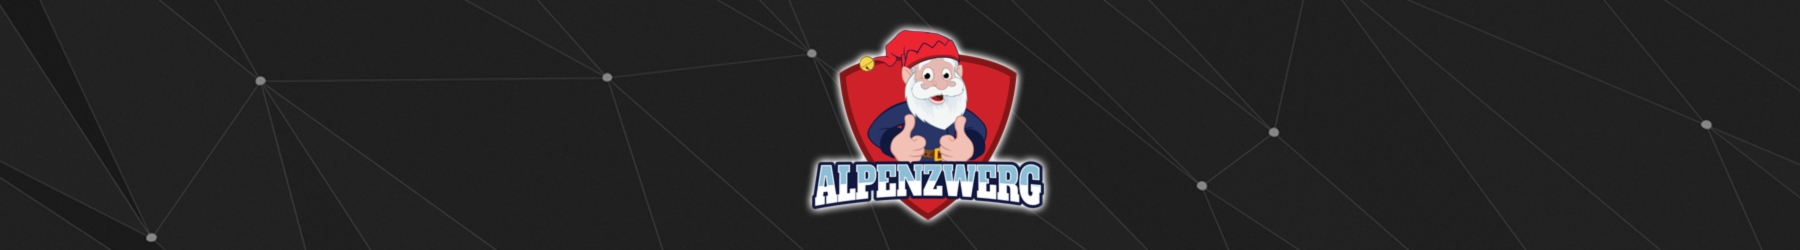 Showroom - Alpenzwerg